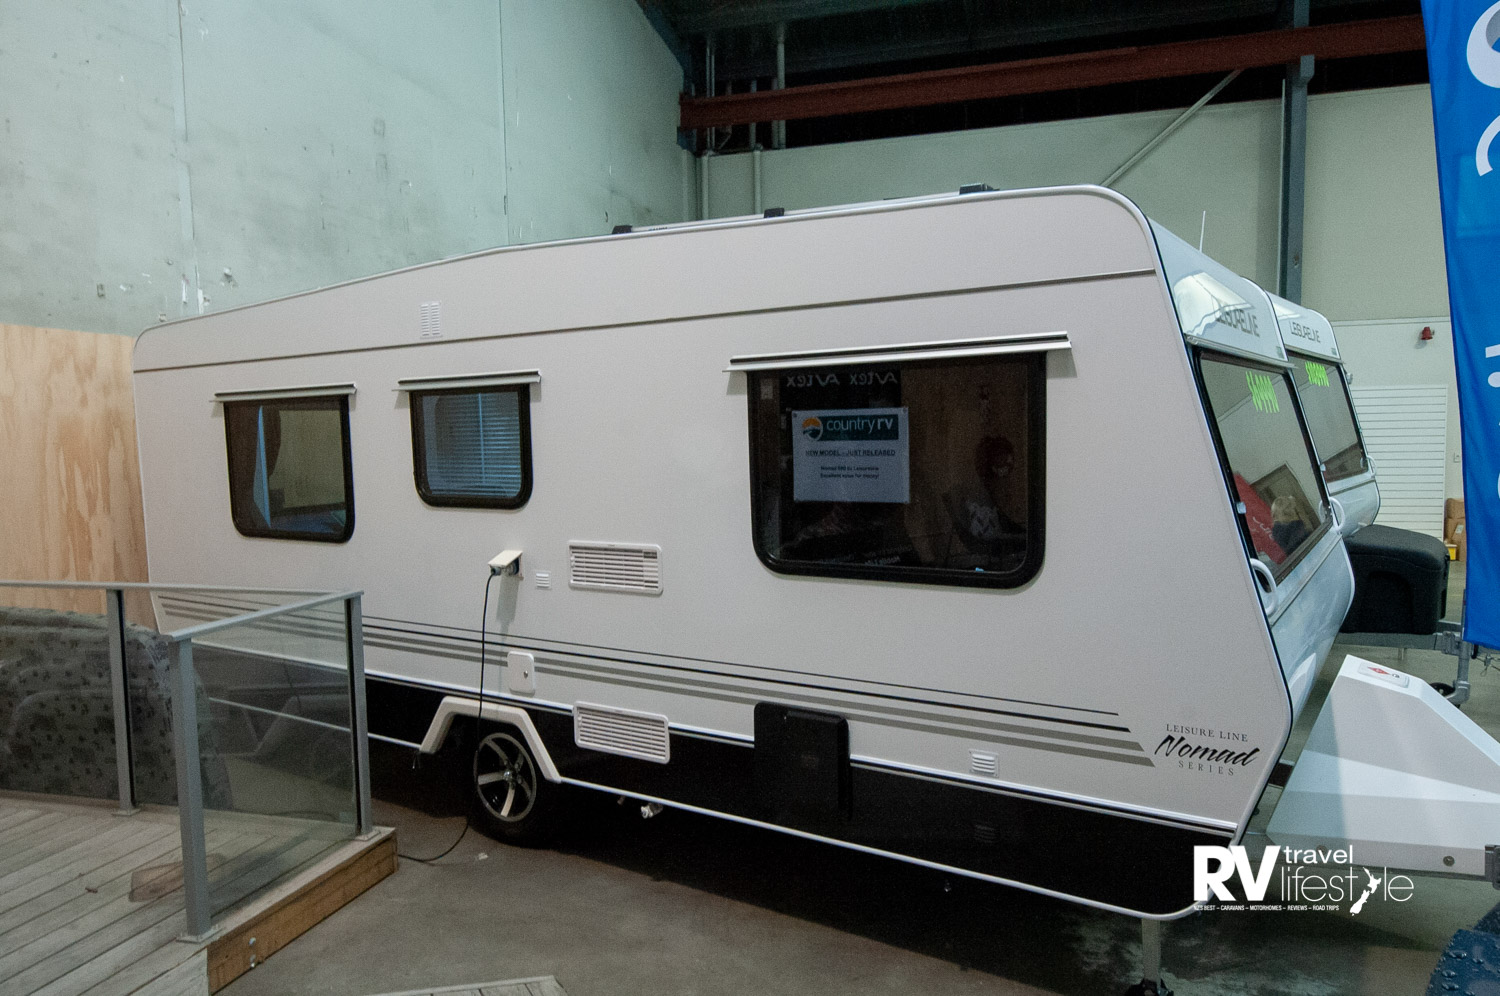 Classic Leisure Line build, aluminium exterior, pitched roof to prevent water sitting around, higher off the ground now to take out the wheel arch inside – a well-built New Zealand caravan